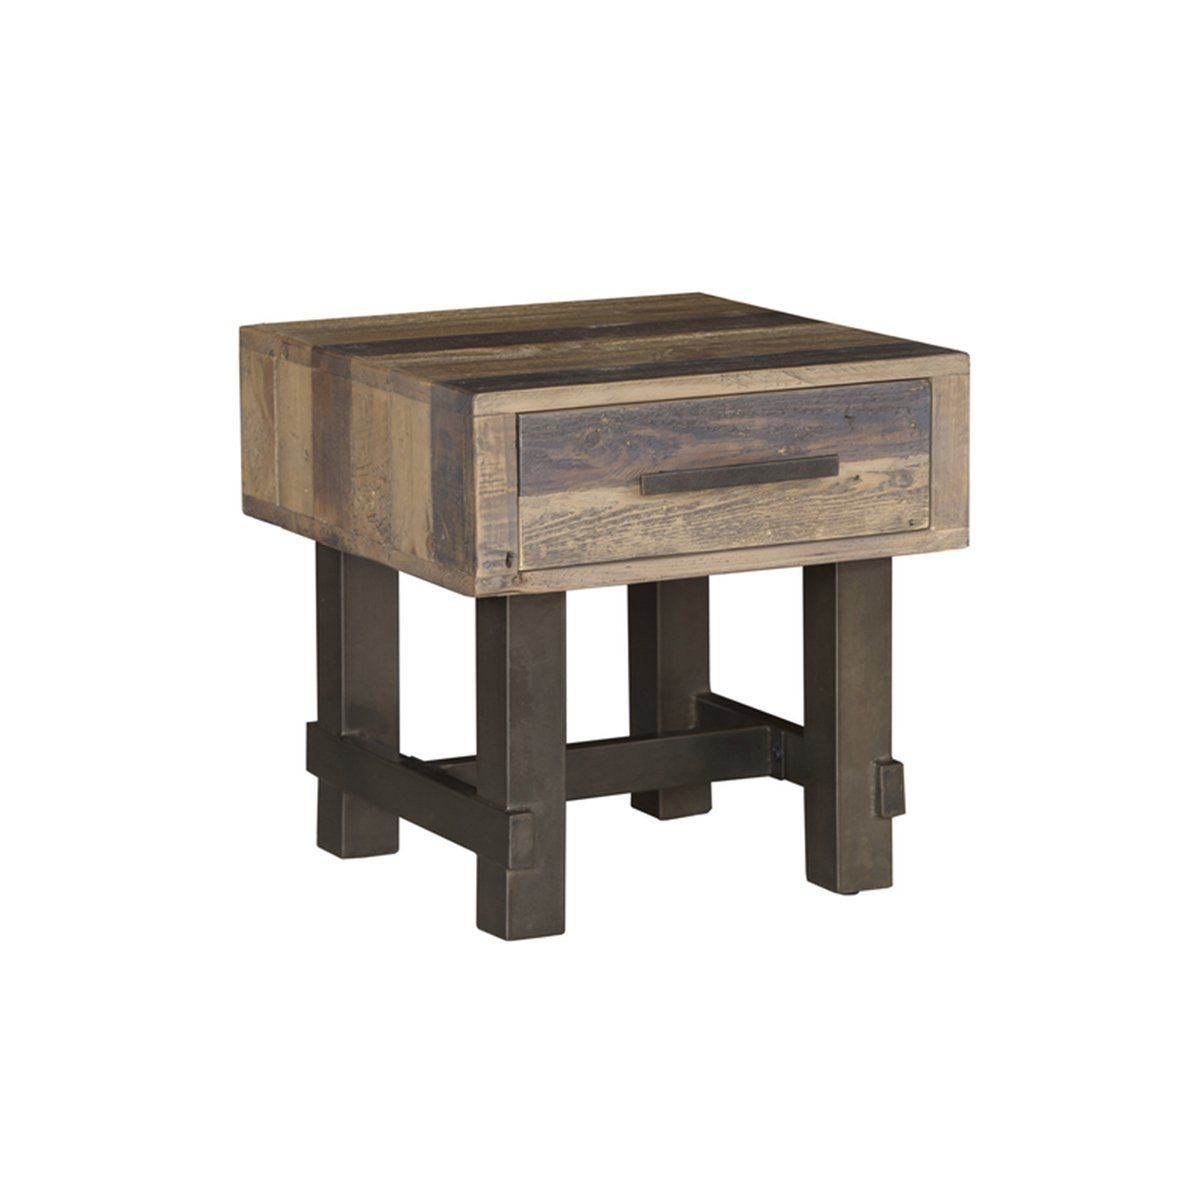 Solid recycled pine wood Side Table | Showhome Furniture